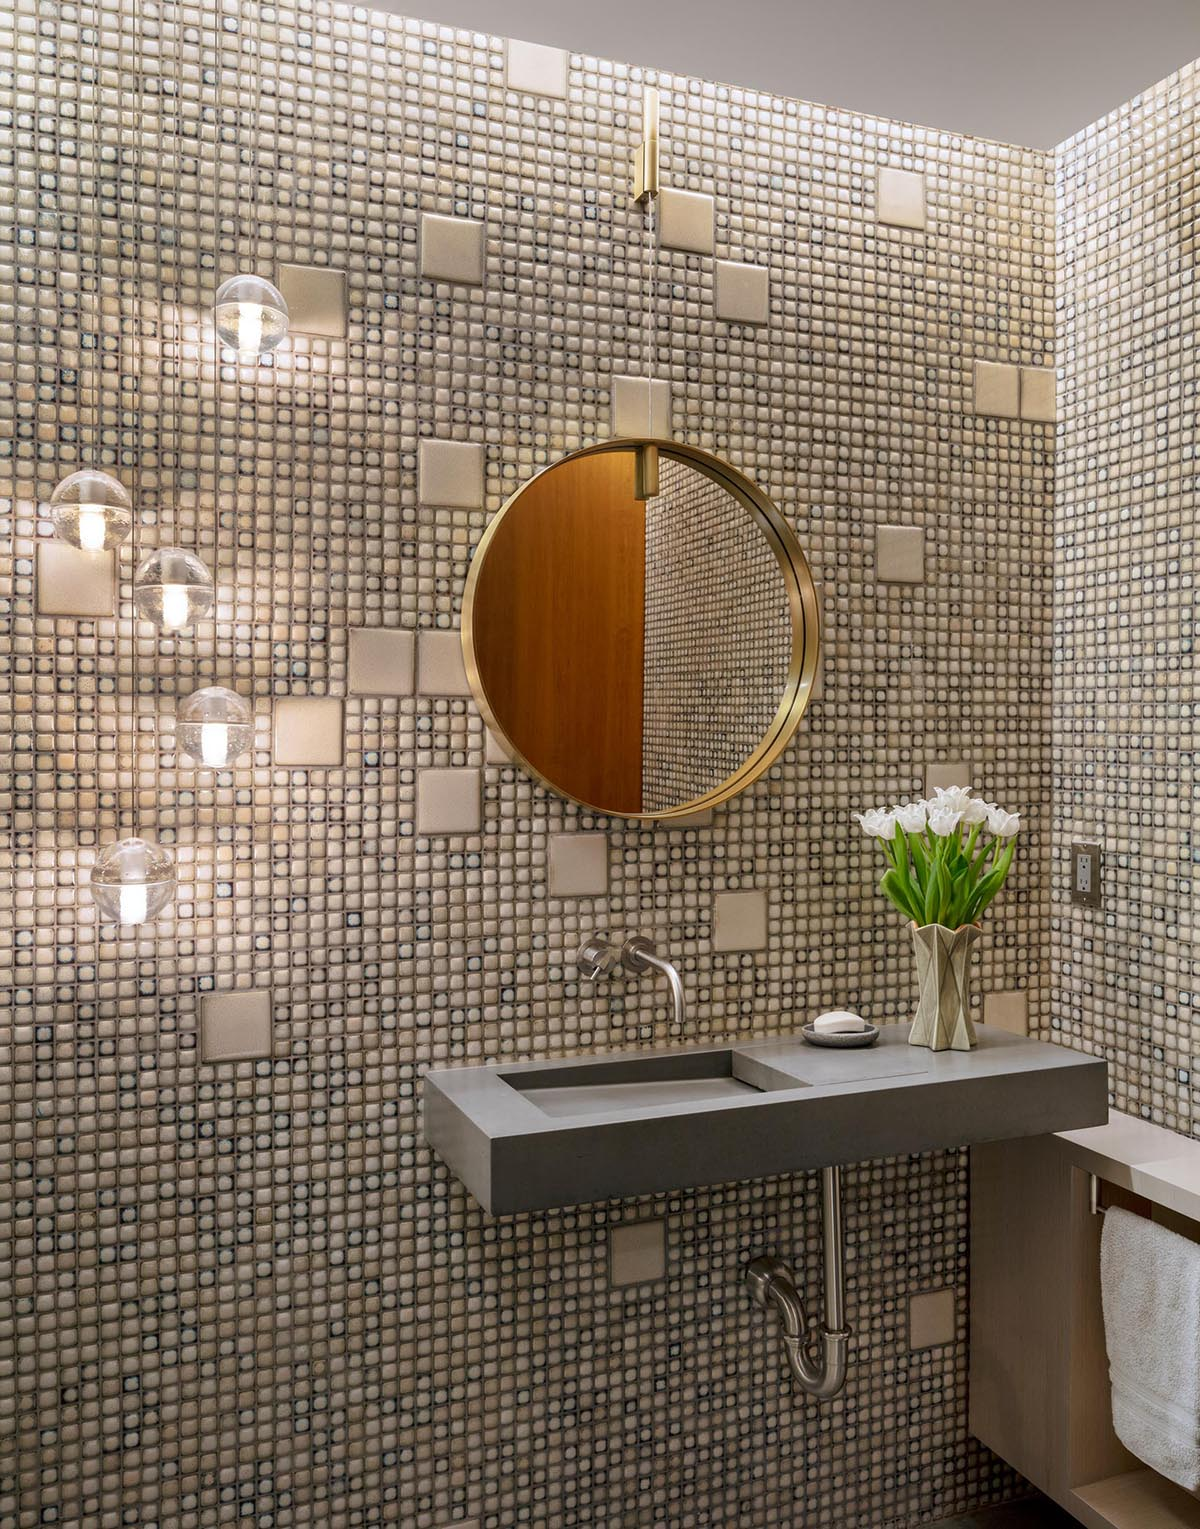 In this powder room, there's a combination of small and large tiles covering the walls, while a round mirror hangs above a concrete vanity.